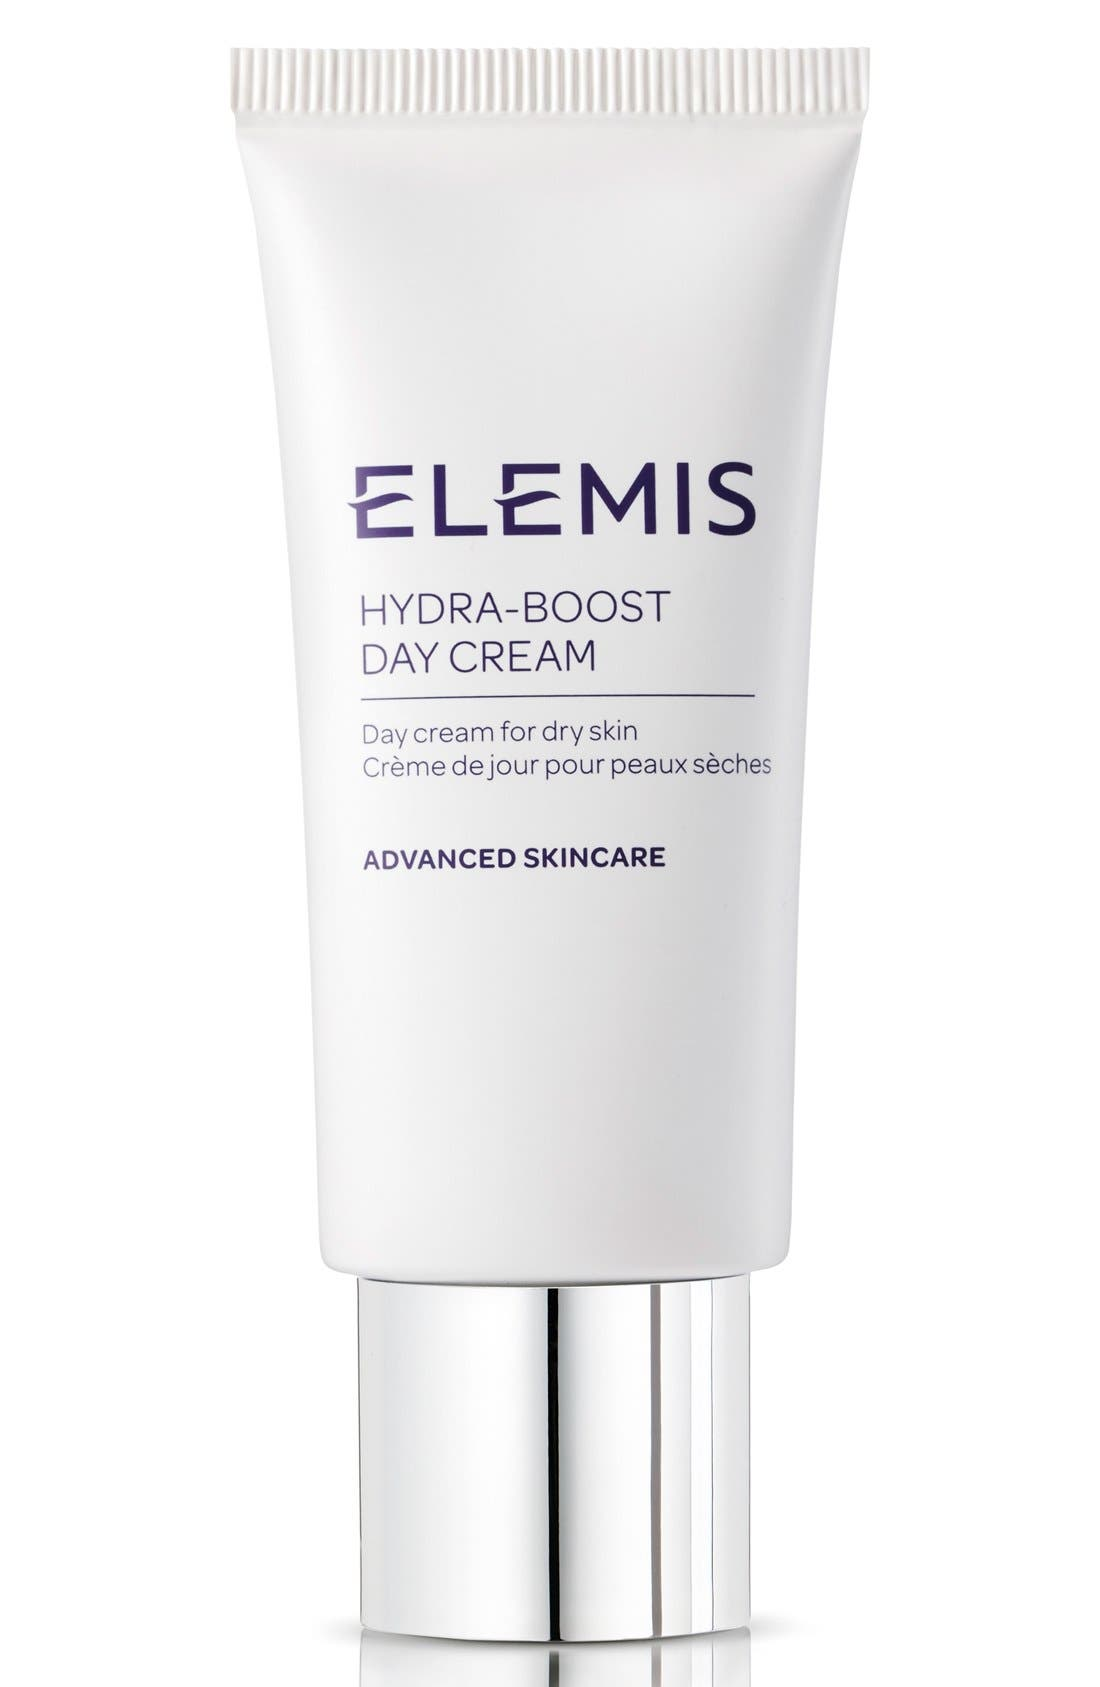 Hydra-Boost Day Cream for Normal to Dry Skin Types,                             Main thumbnail 1, color,                             NO COLOR